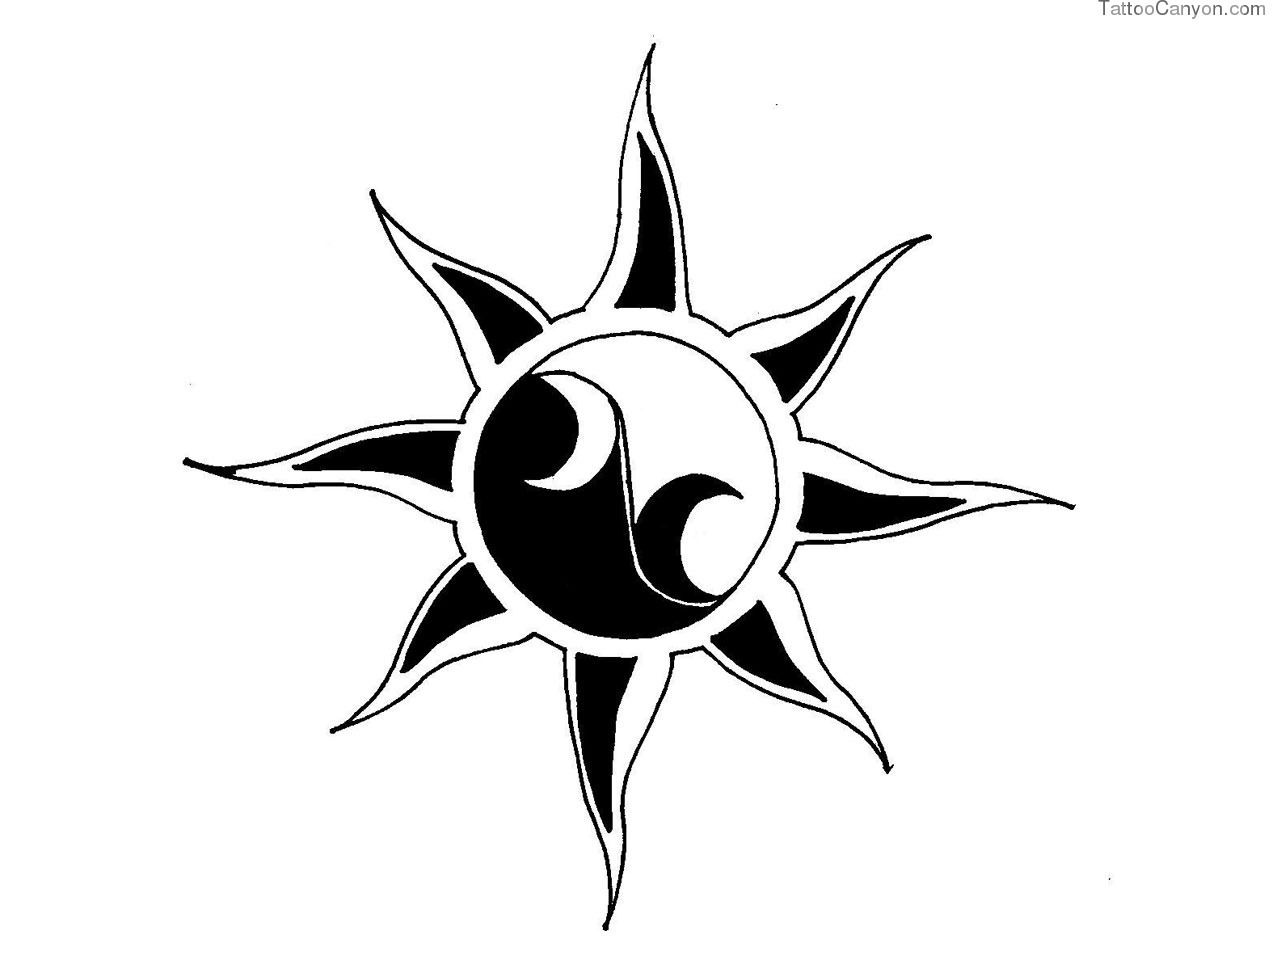 Sunrise tribal tattoo designs tribal sun - Sun Tattoos Pictures And Designs Free High Quality Photographs Flash And Image Designs In Our Sun Tattoos Gallery Celtic Tattoos And Tribal Tattoos Shown